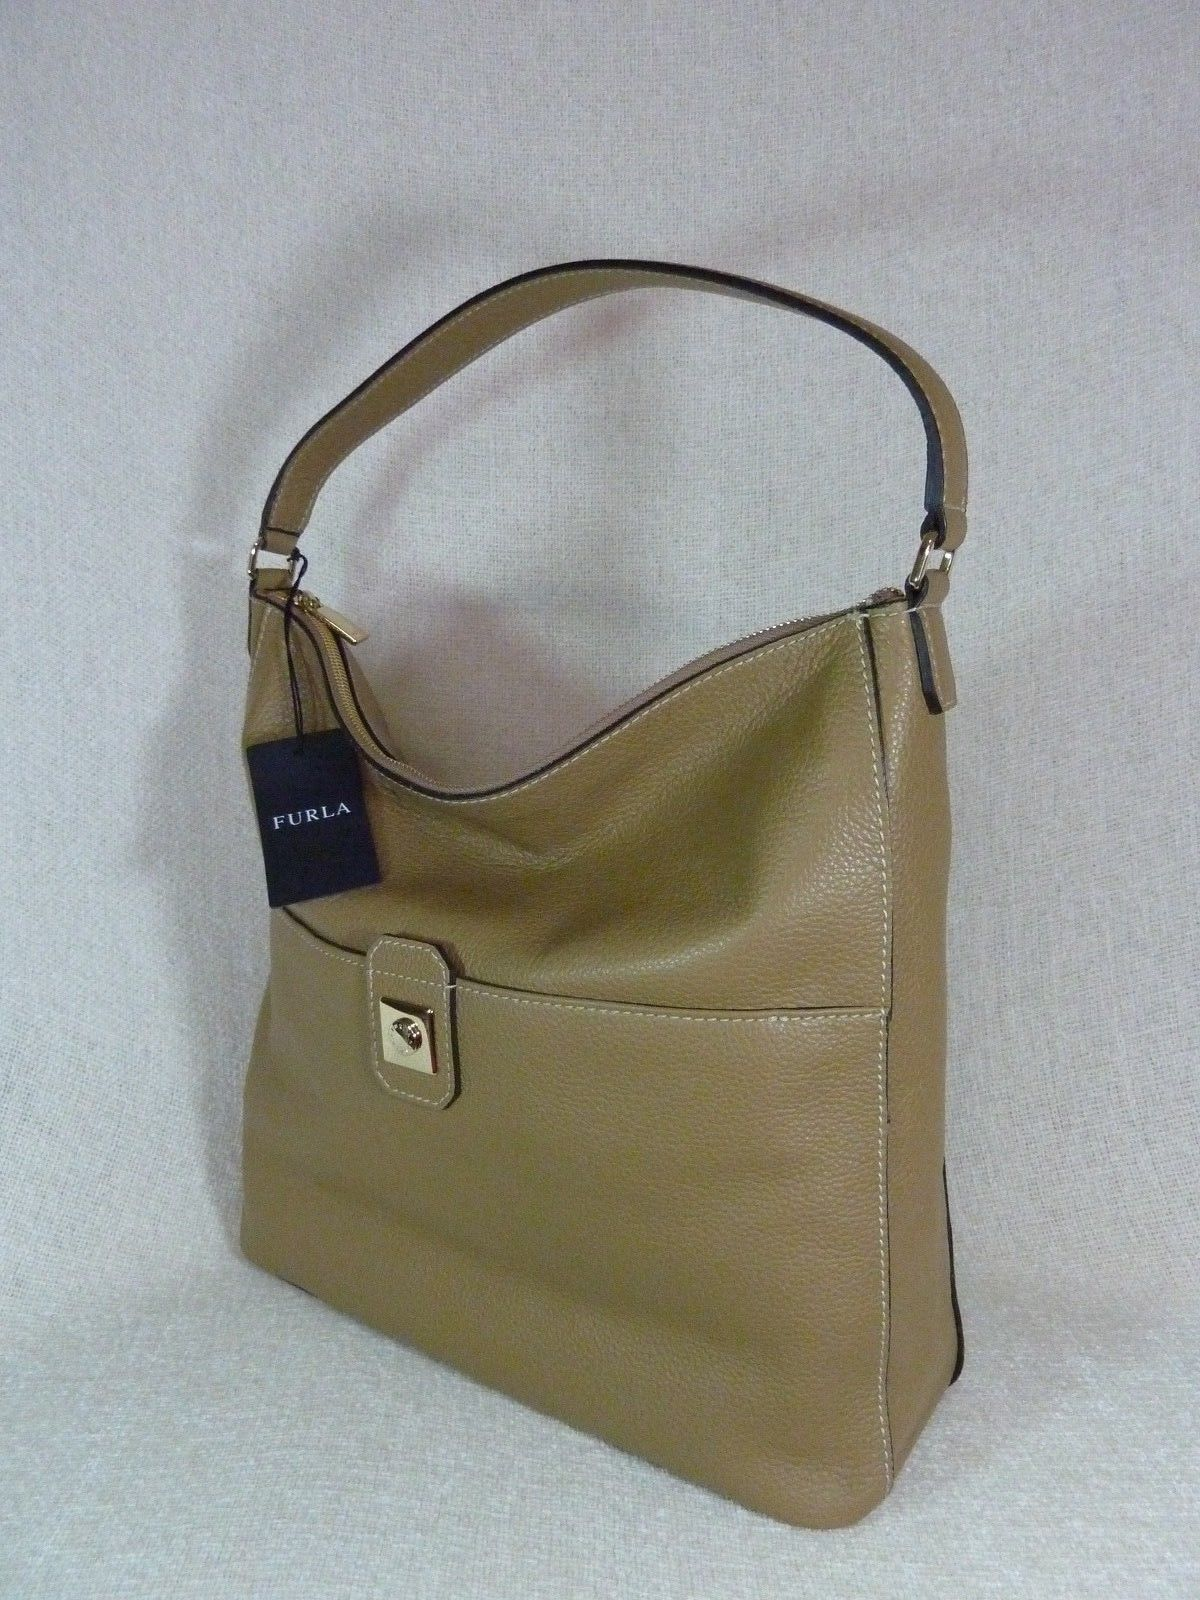 NWT Furla Cappuccino Pebbled Leather Jo Vertical Tote Bag image 6